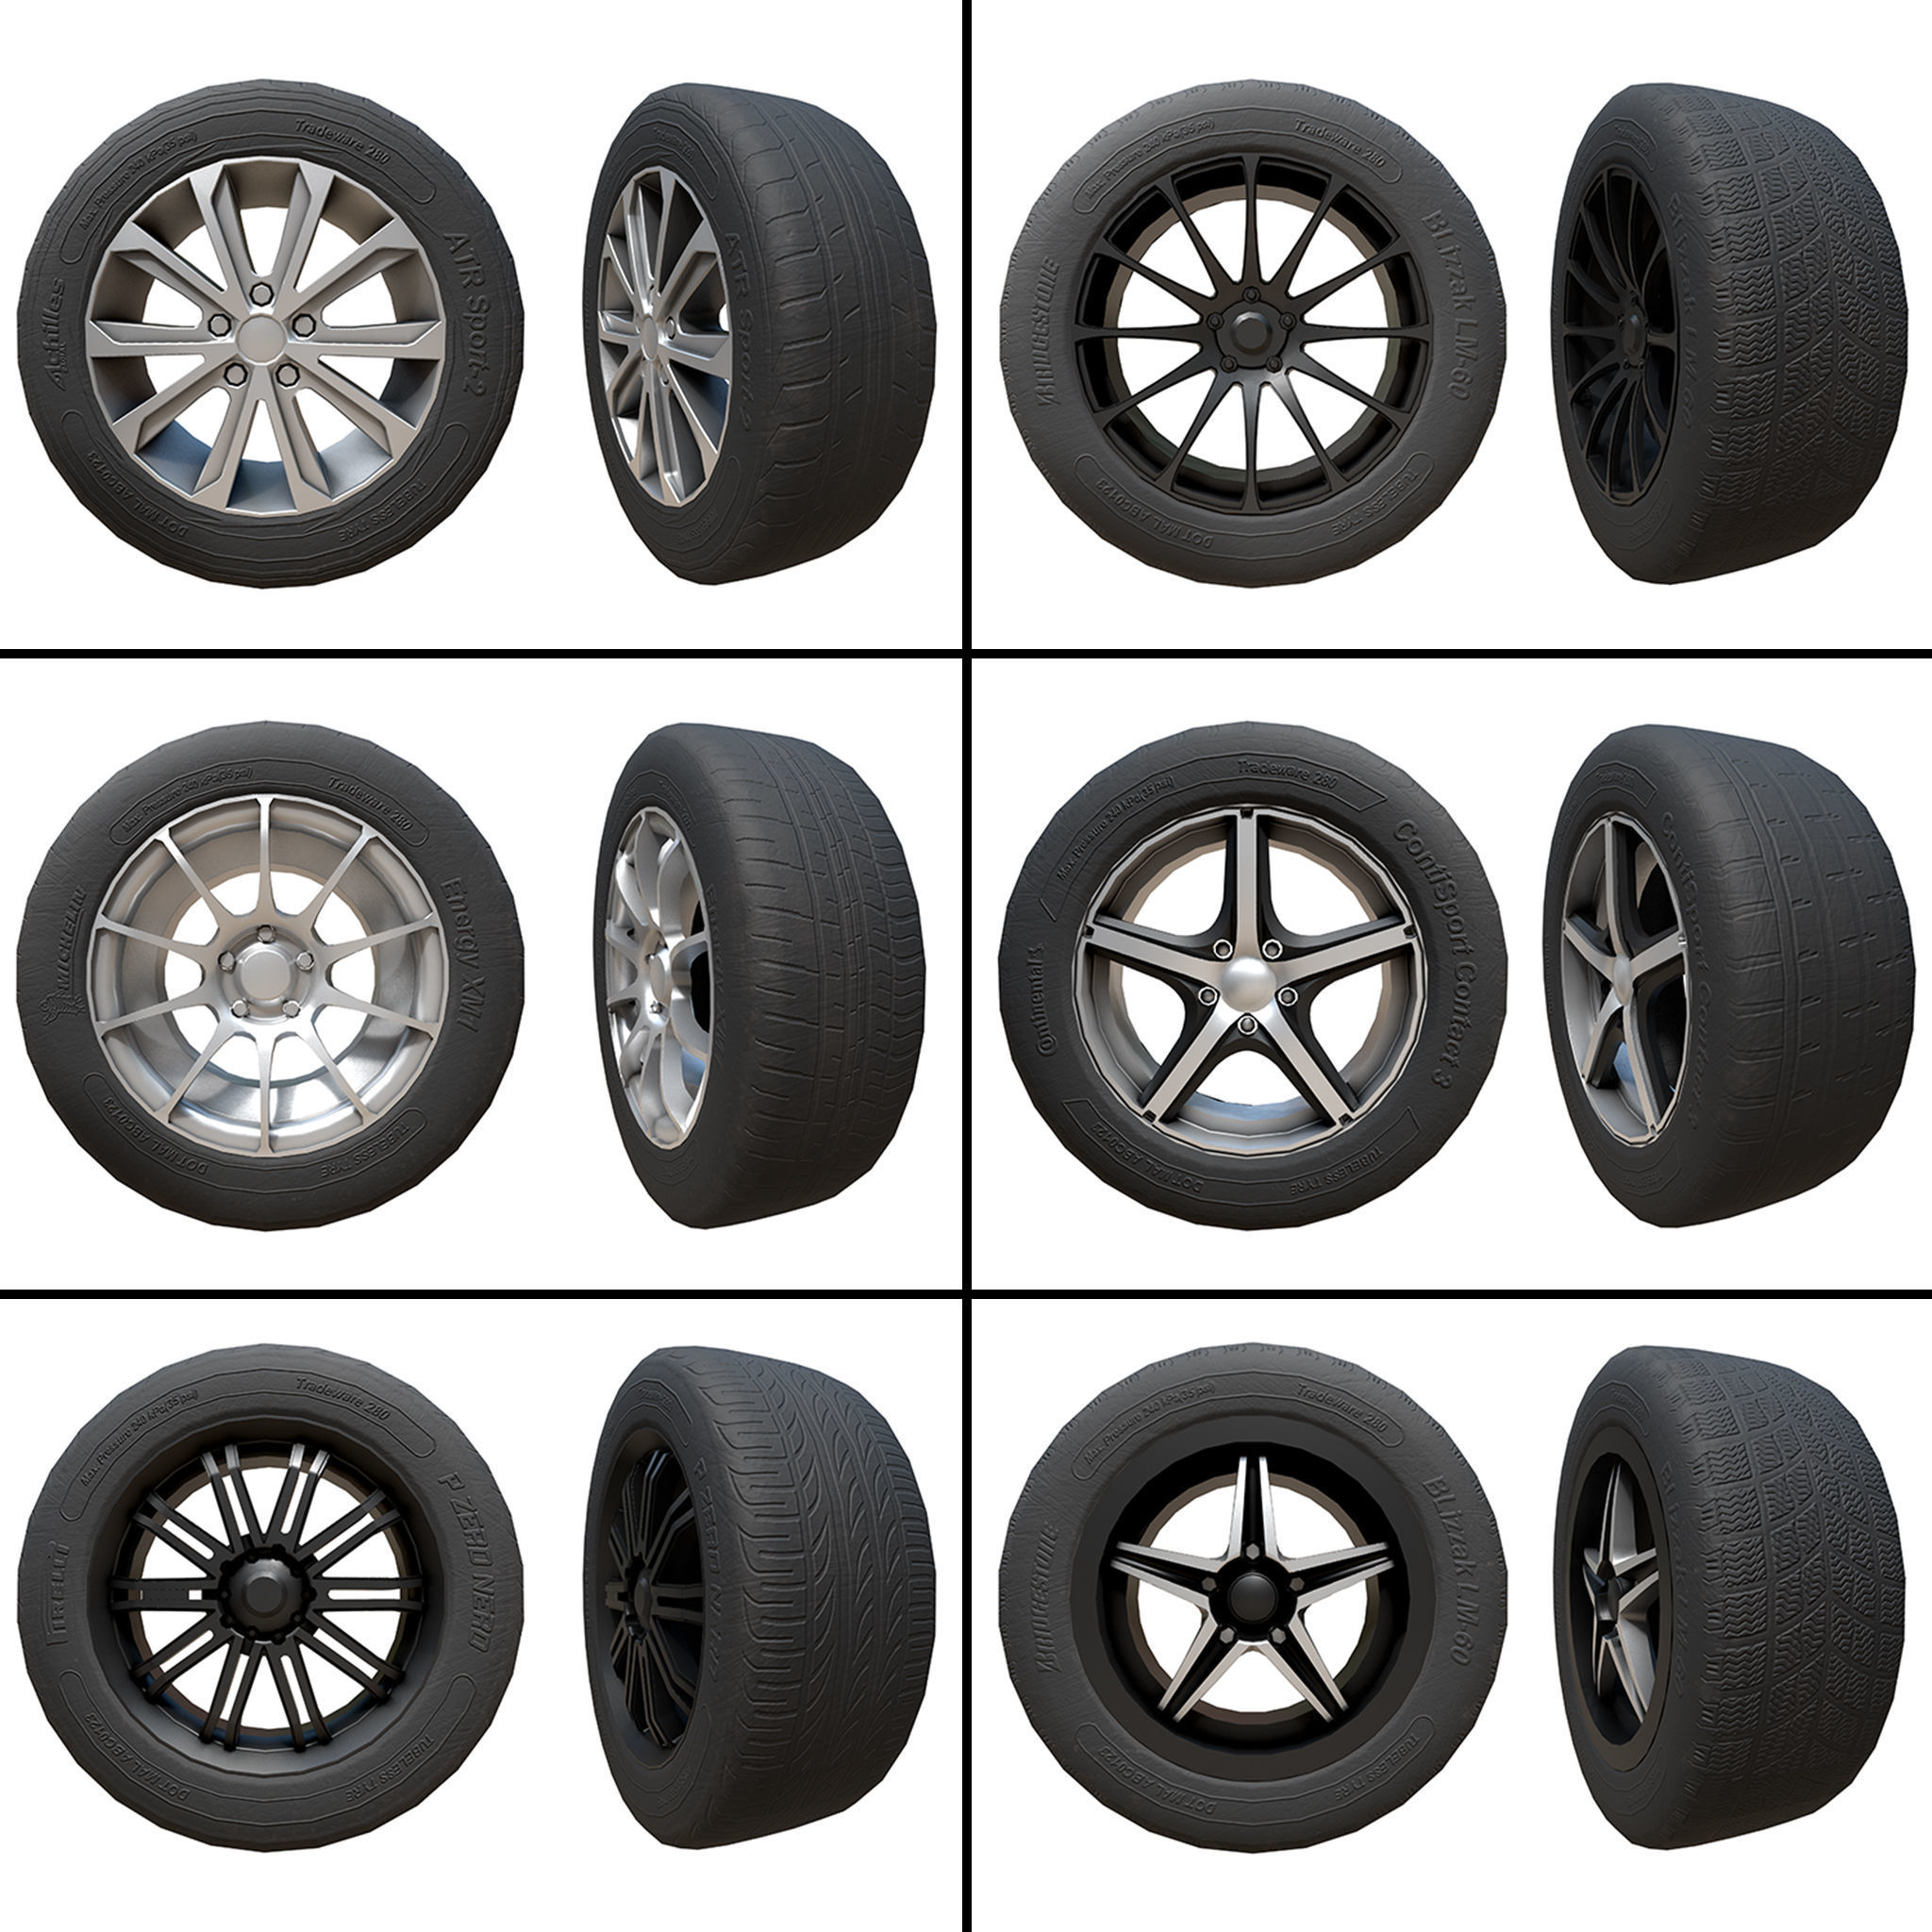 Pack of Tyres and Alloys - 6 Alloy Wheels and 5 Tyre Textures